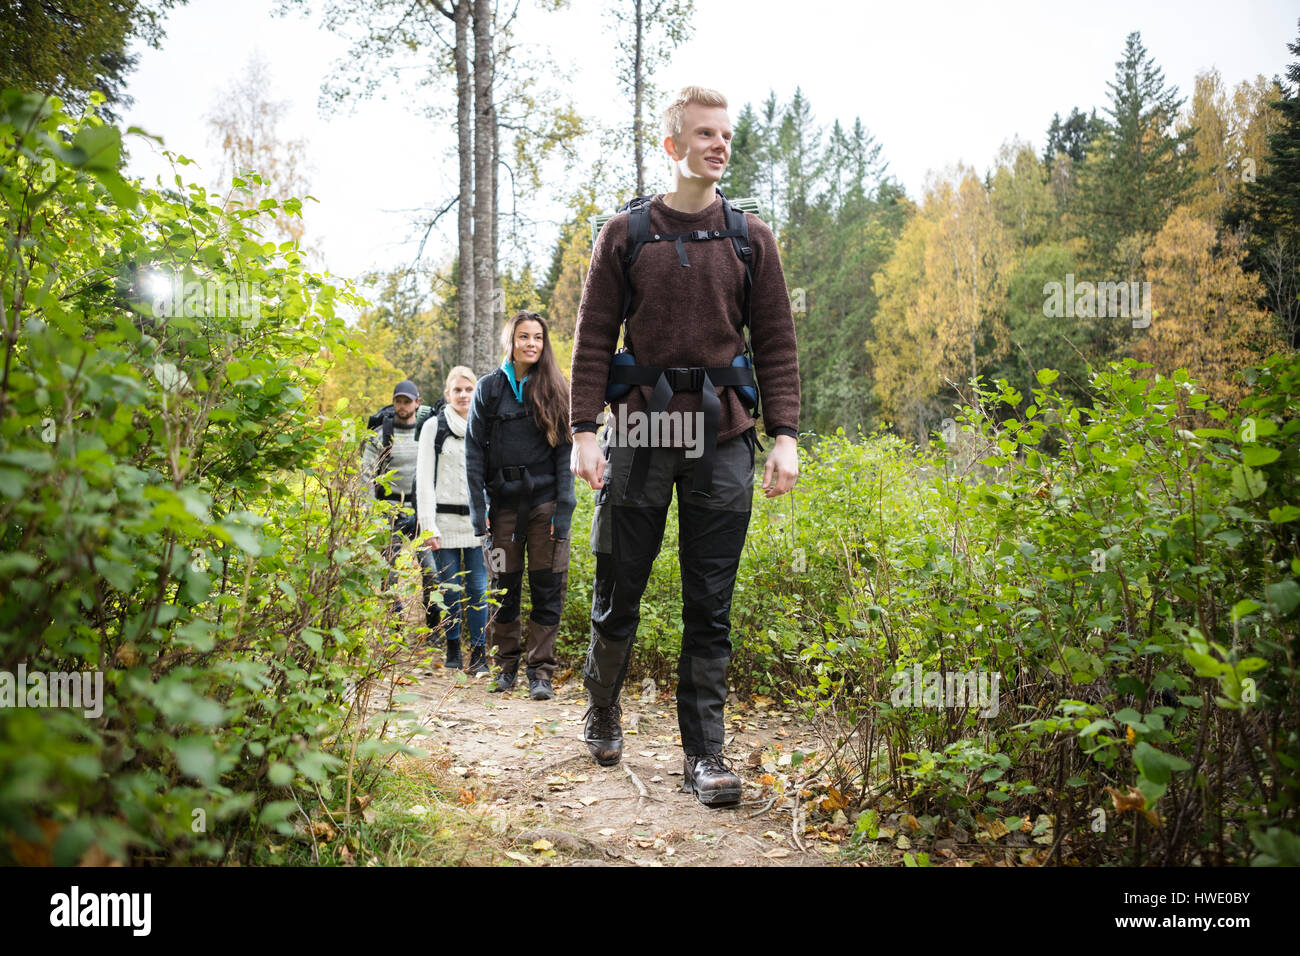 Male Hiker With Friends Walking On Forest Trail - Stock Image